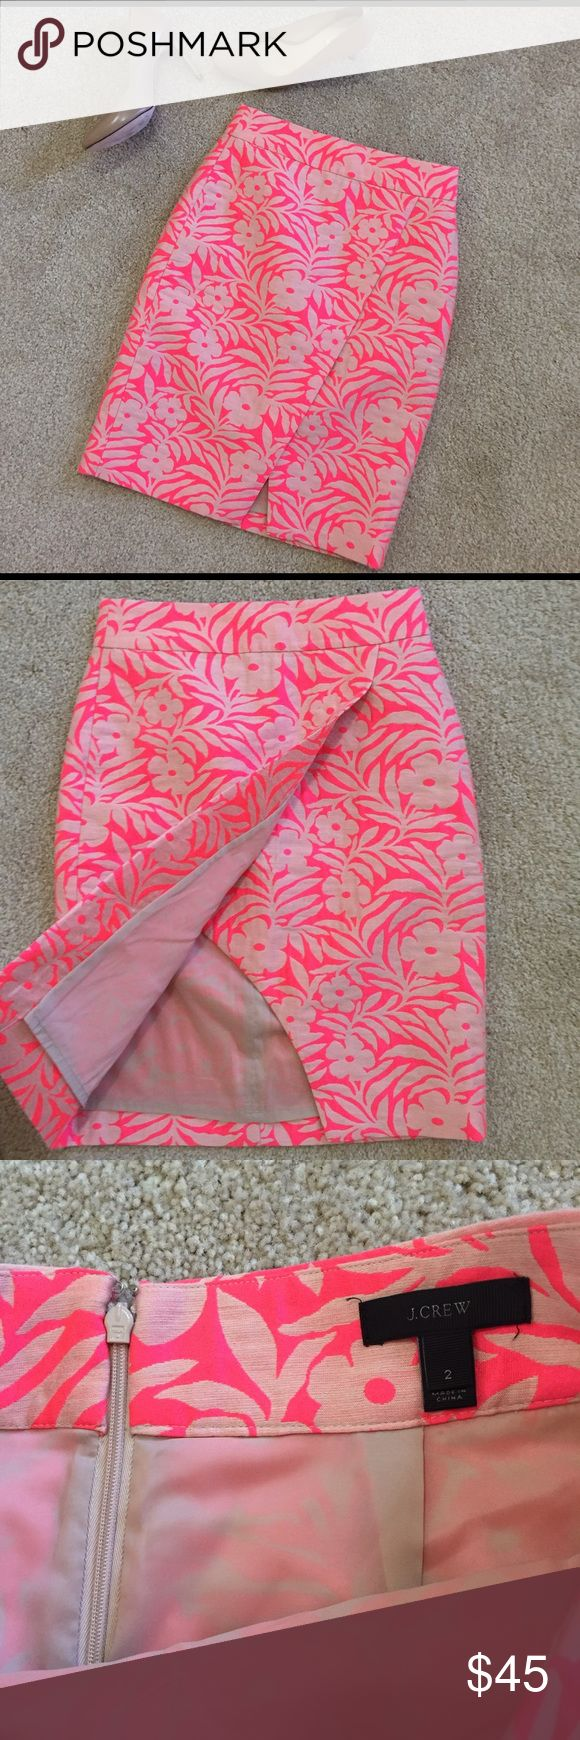 """J Crew brocade skirt J Crew faux-wrap tulip skirt in a hot pink and pale pink brocade pattern! Super-fun skirt, pairs well with a fitted tee or silk button-up. Sits at true waist. Hidden rear zipper. Size 2. Waist measures 13.5"""", hips measure 18.5"""", and length is 23"""". Fits me perfectly and I am a 27"""" waist normally. Excellent condition. J. Crew Skirts Pencil"""